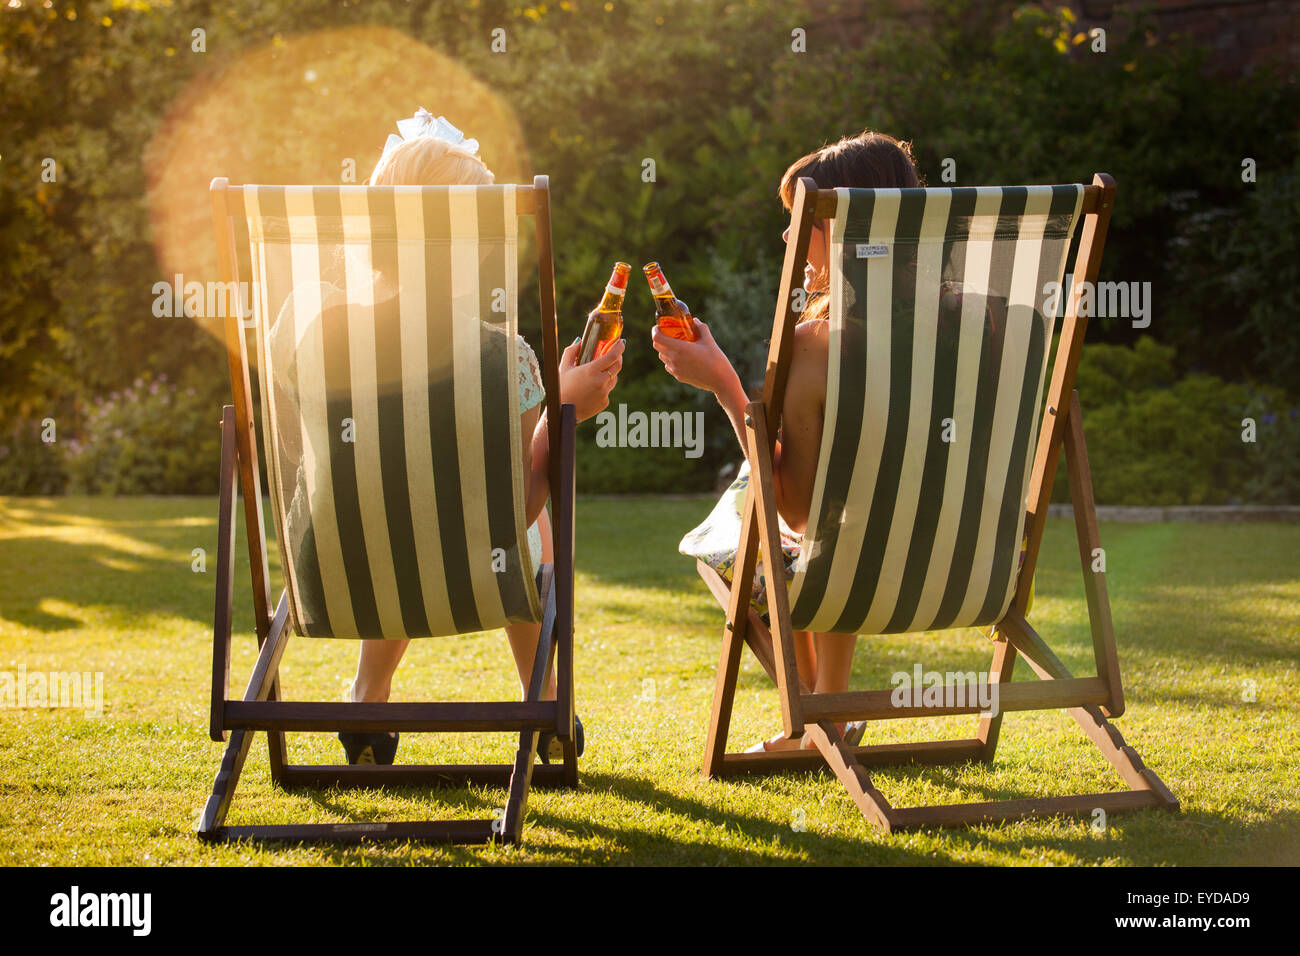 Two women sitting in deck chairs against the late afternoon summer sun, drinking bottled beers. - Stock Image